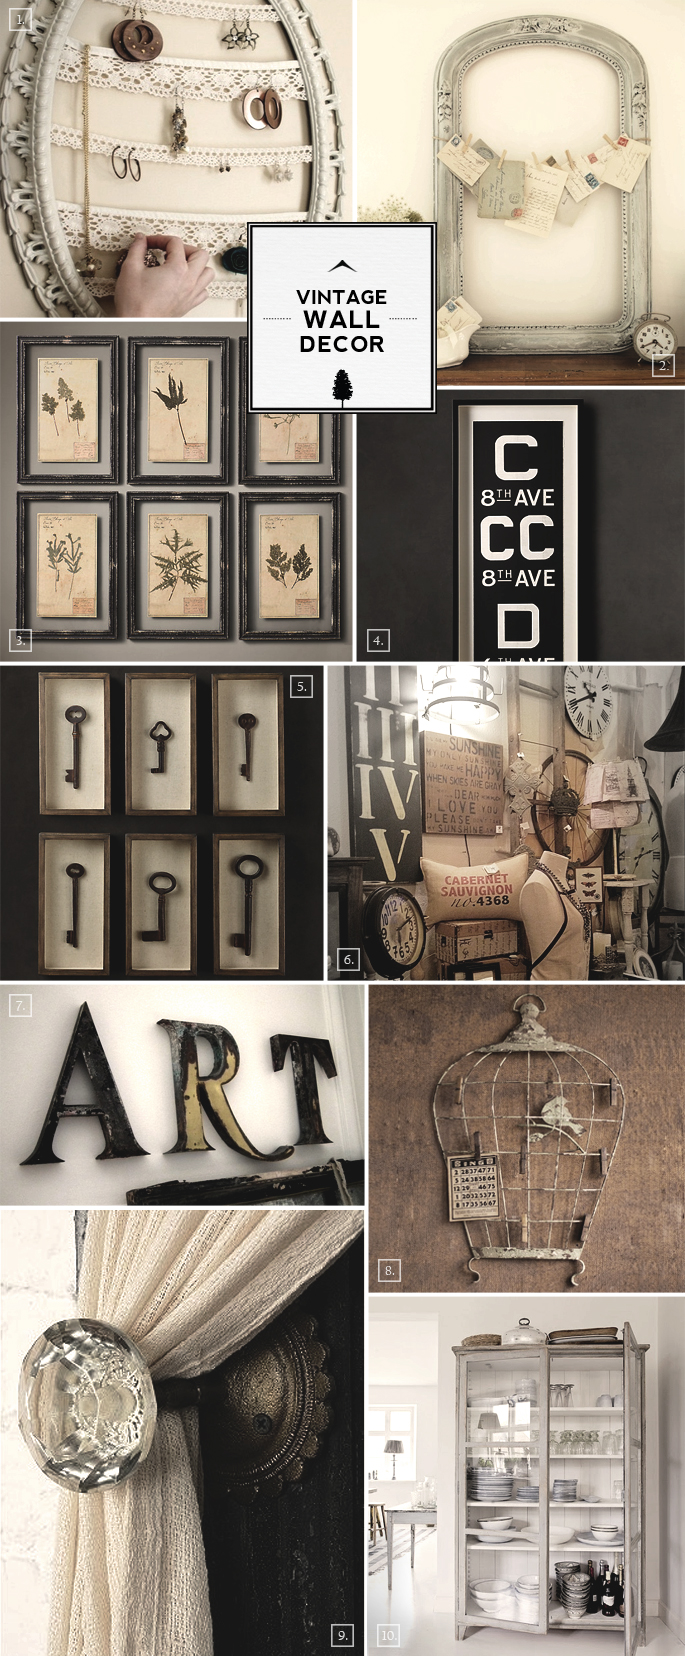 Vintage Wall Decor Ideas From Bird Cages To Designing